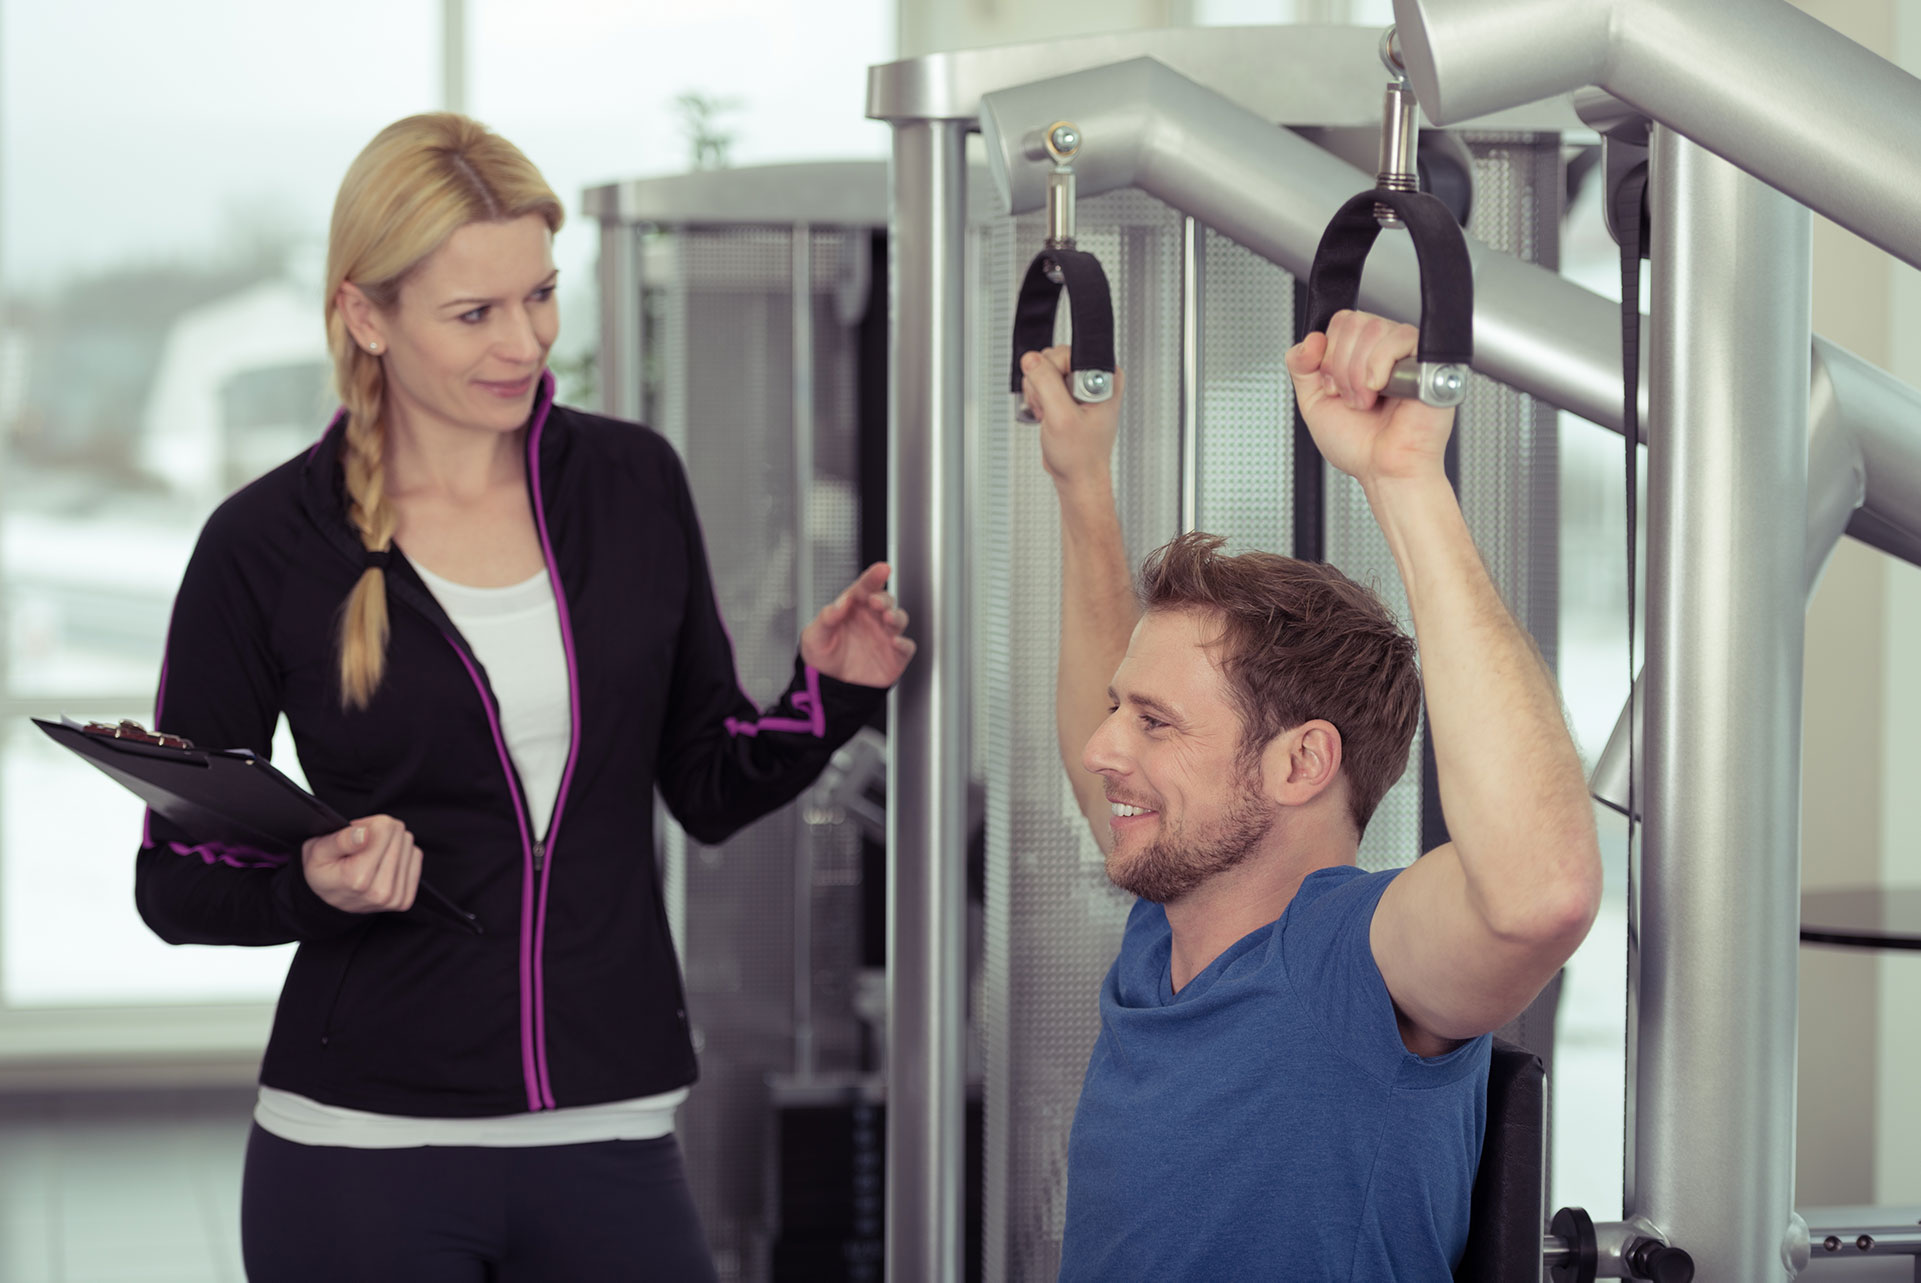 Female trainer working with a male client